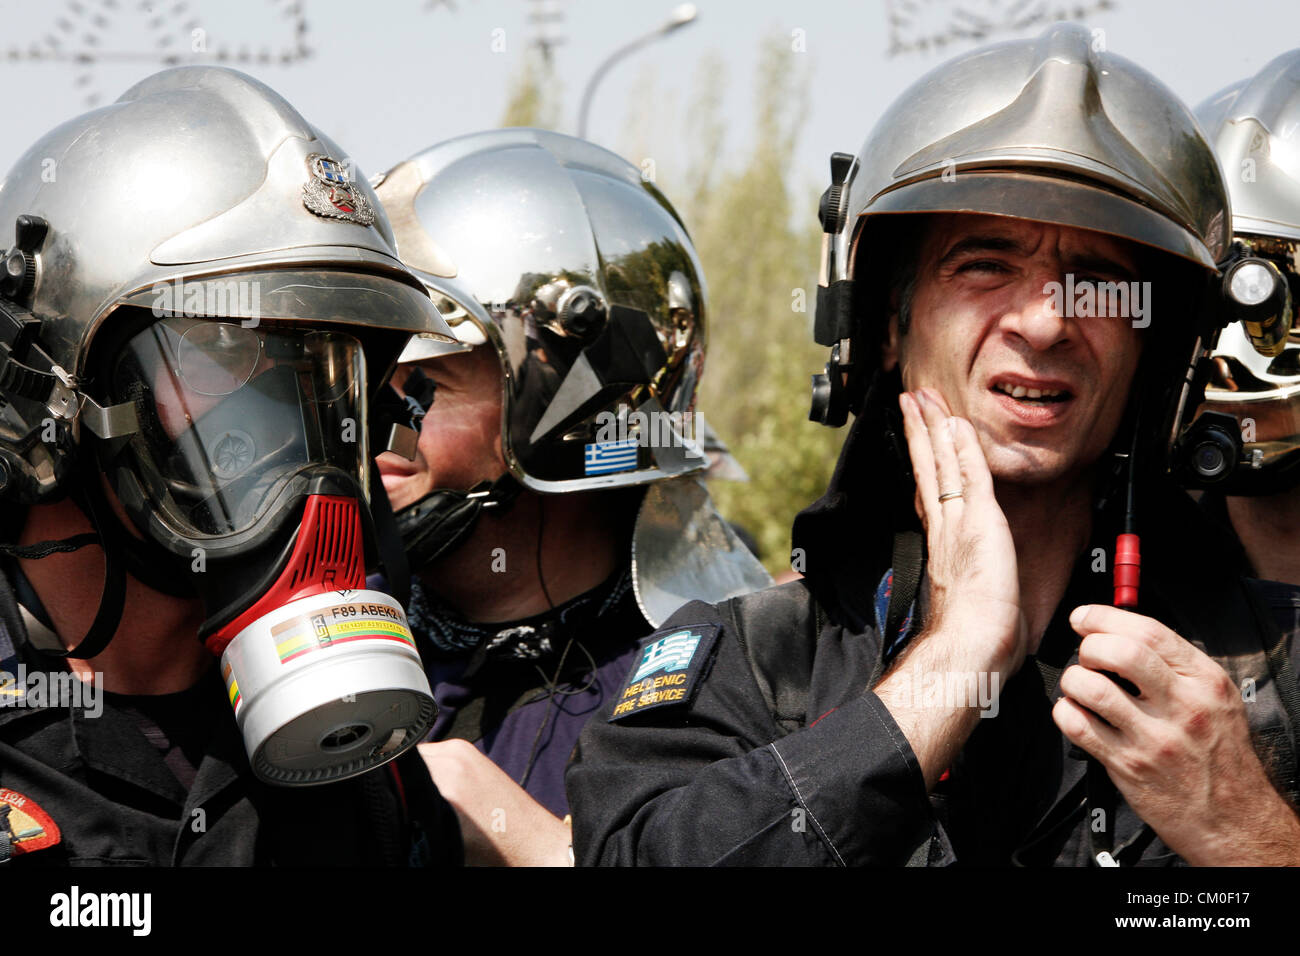 Thessaloniki, Greece. 8th September 2012. Policemen, firefighters and port policeman officers protest in Thessaloniki - Stock Image